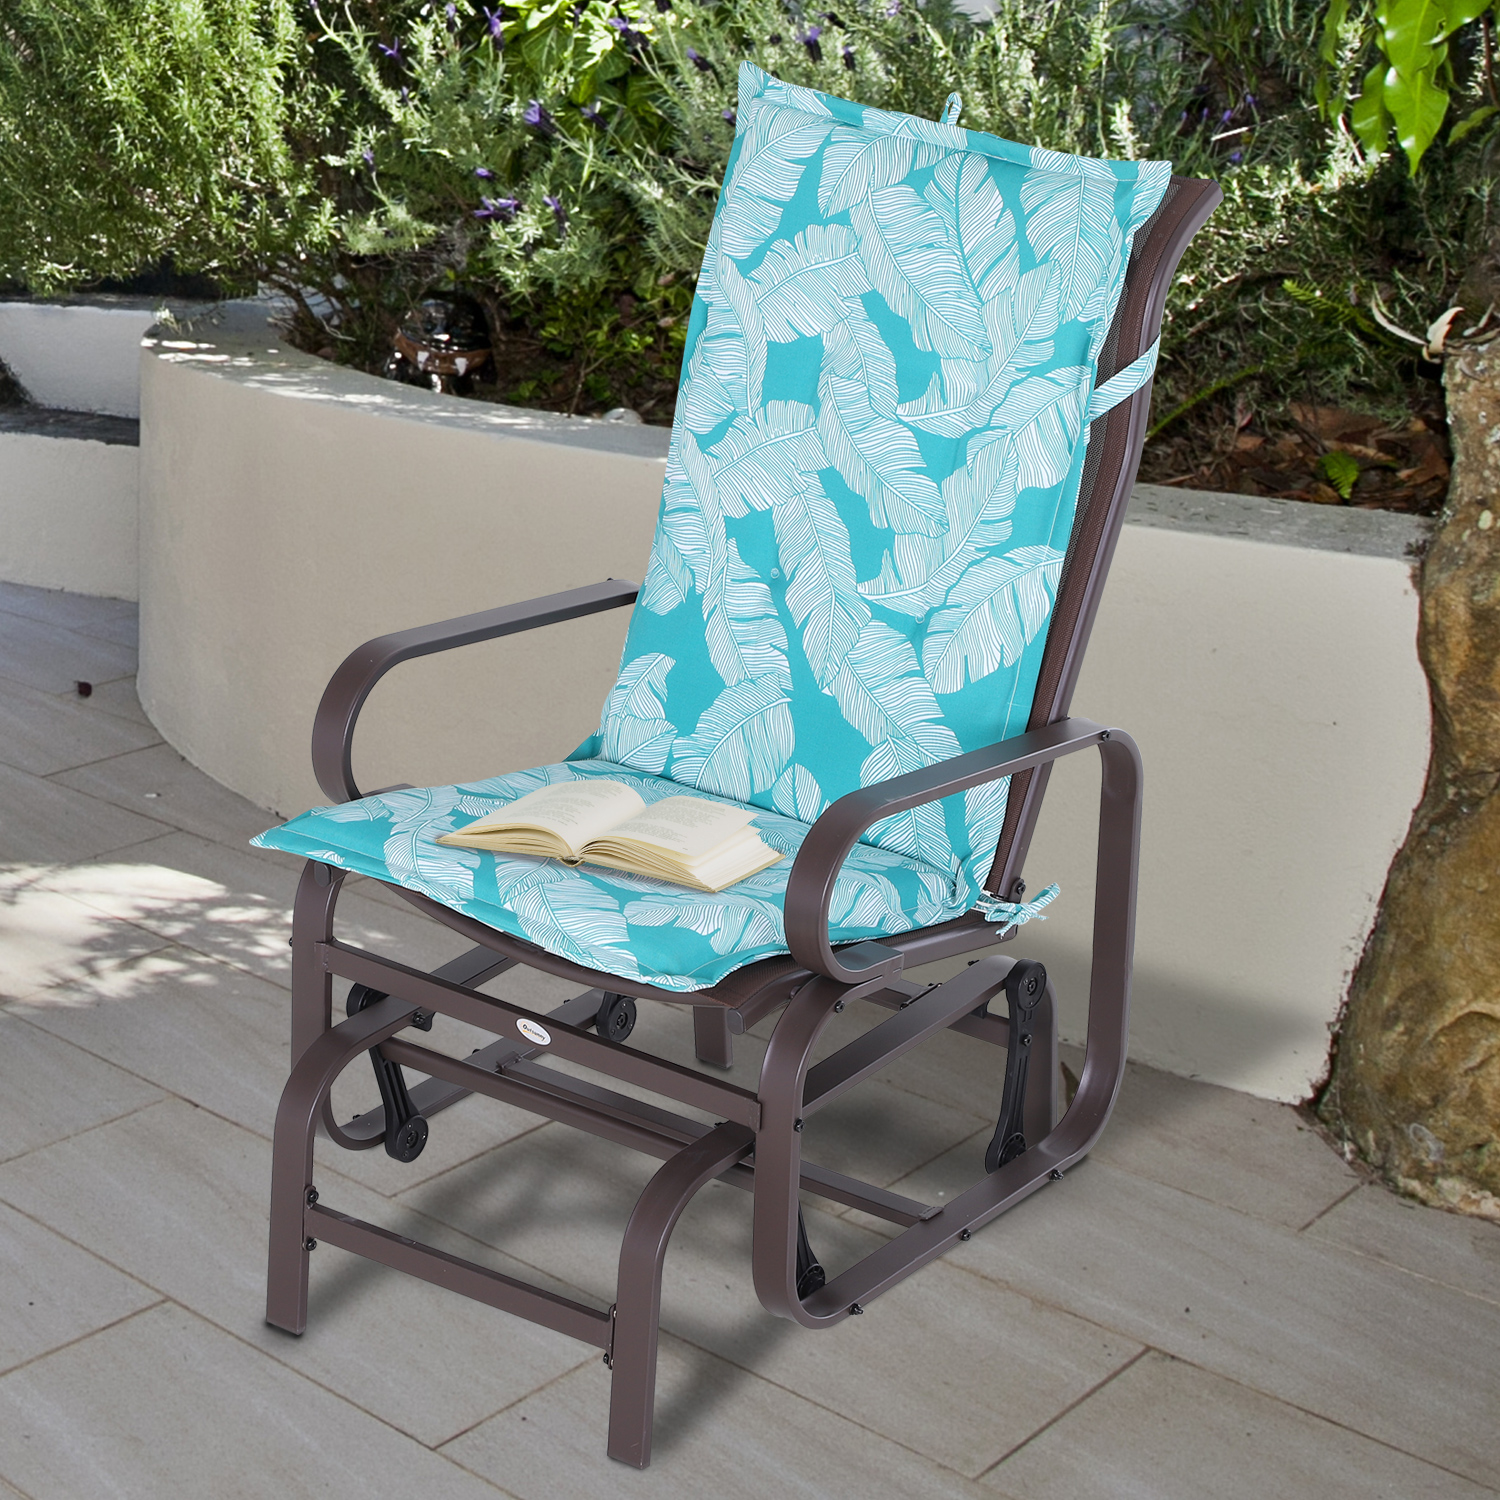 Outsunny 2-PC Patio Chaise Lounger Cushion Recliner ...